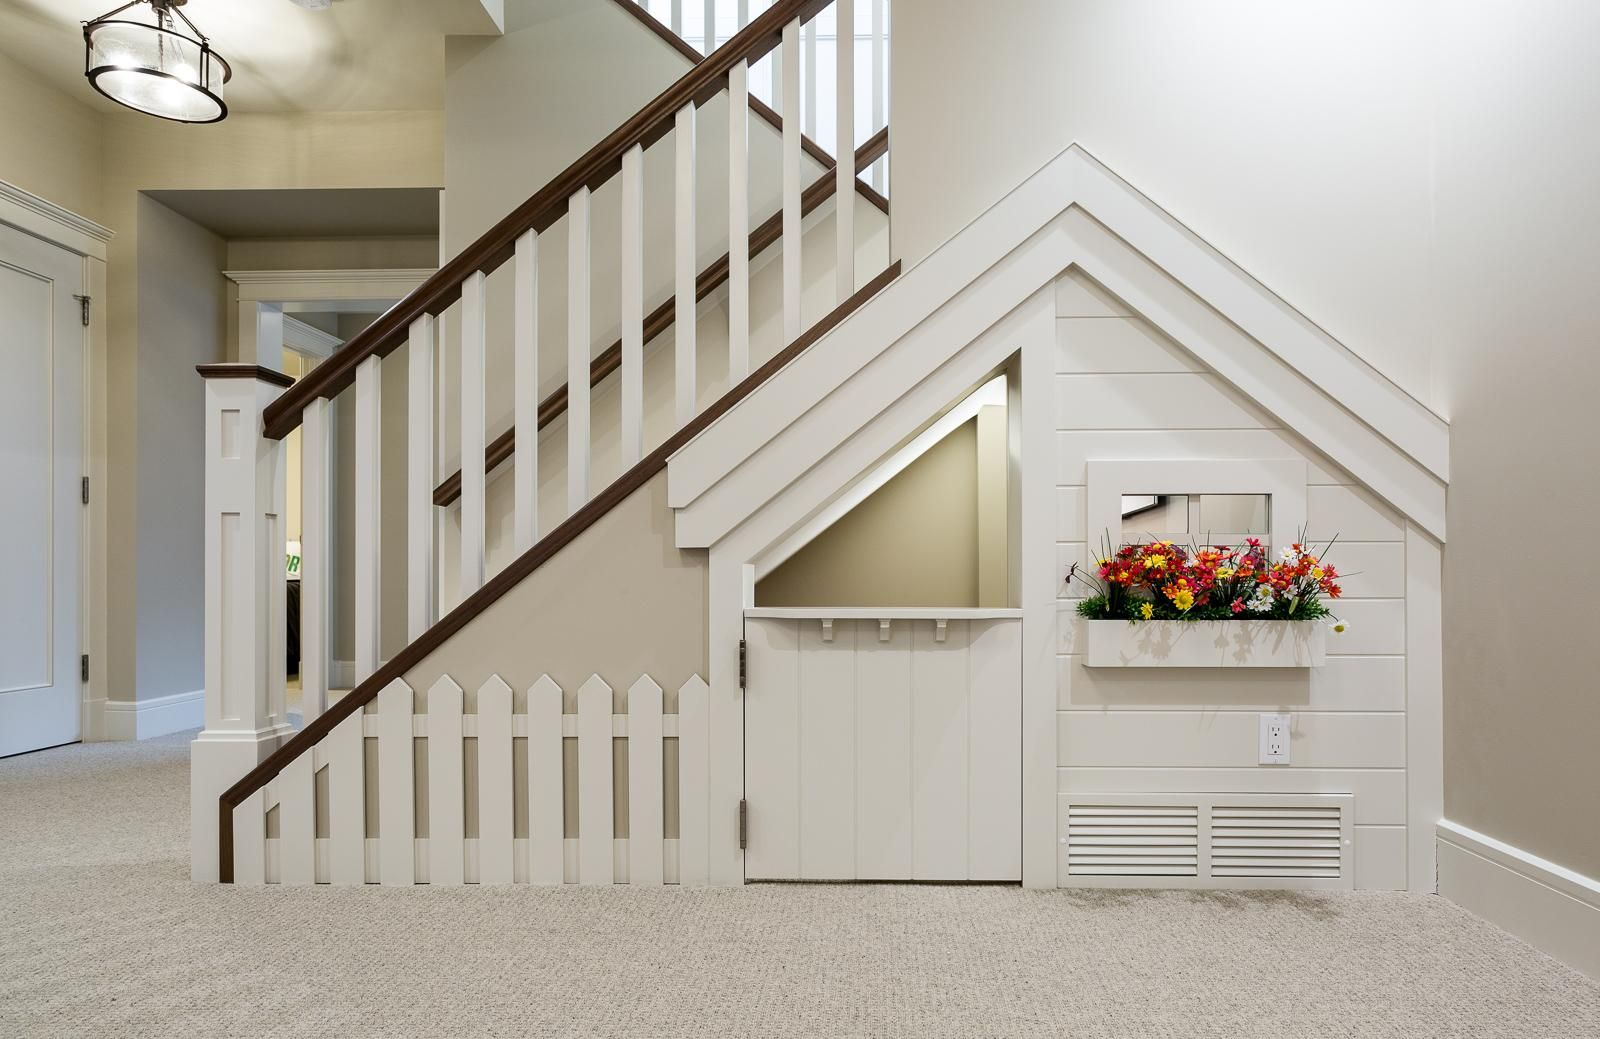 12 Creative Ways To Use The Space Under Your Stairs Play Houses Home Decor Online Under Stairs Playroom